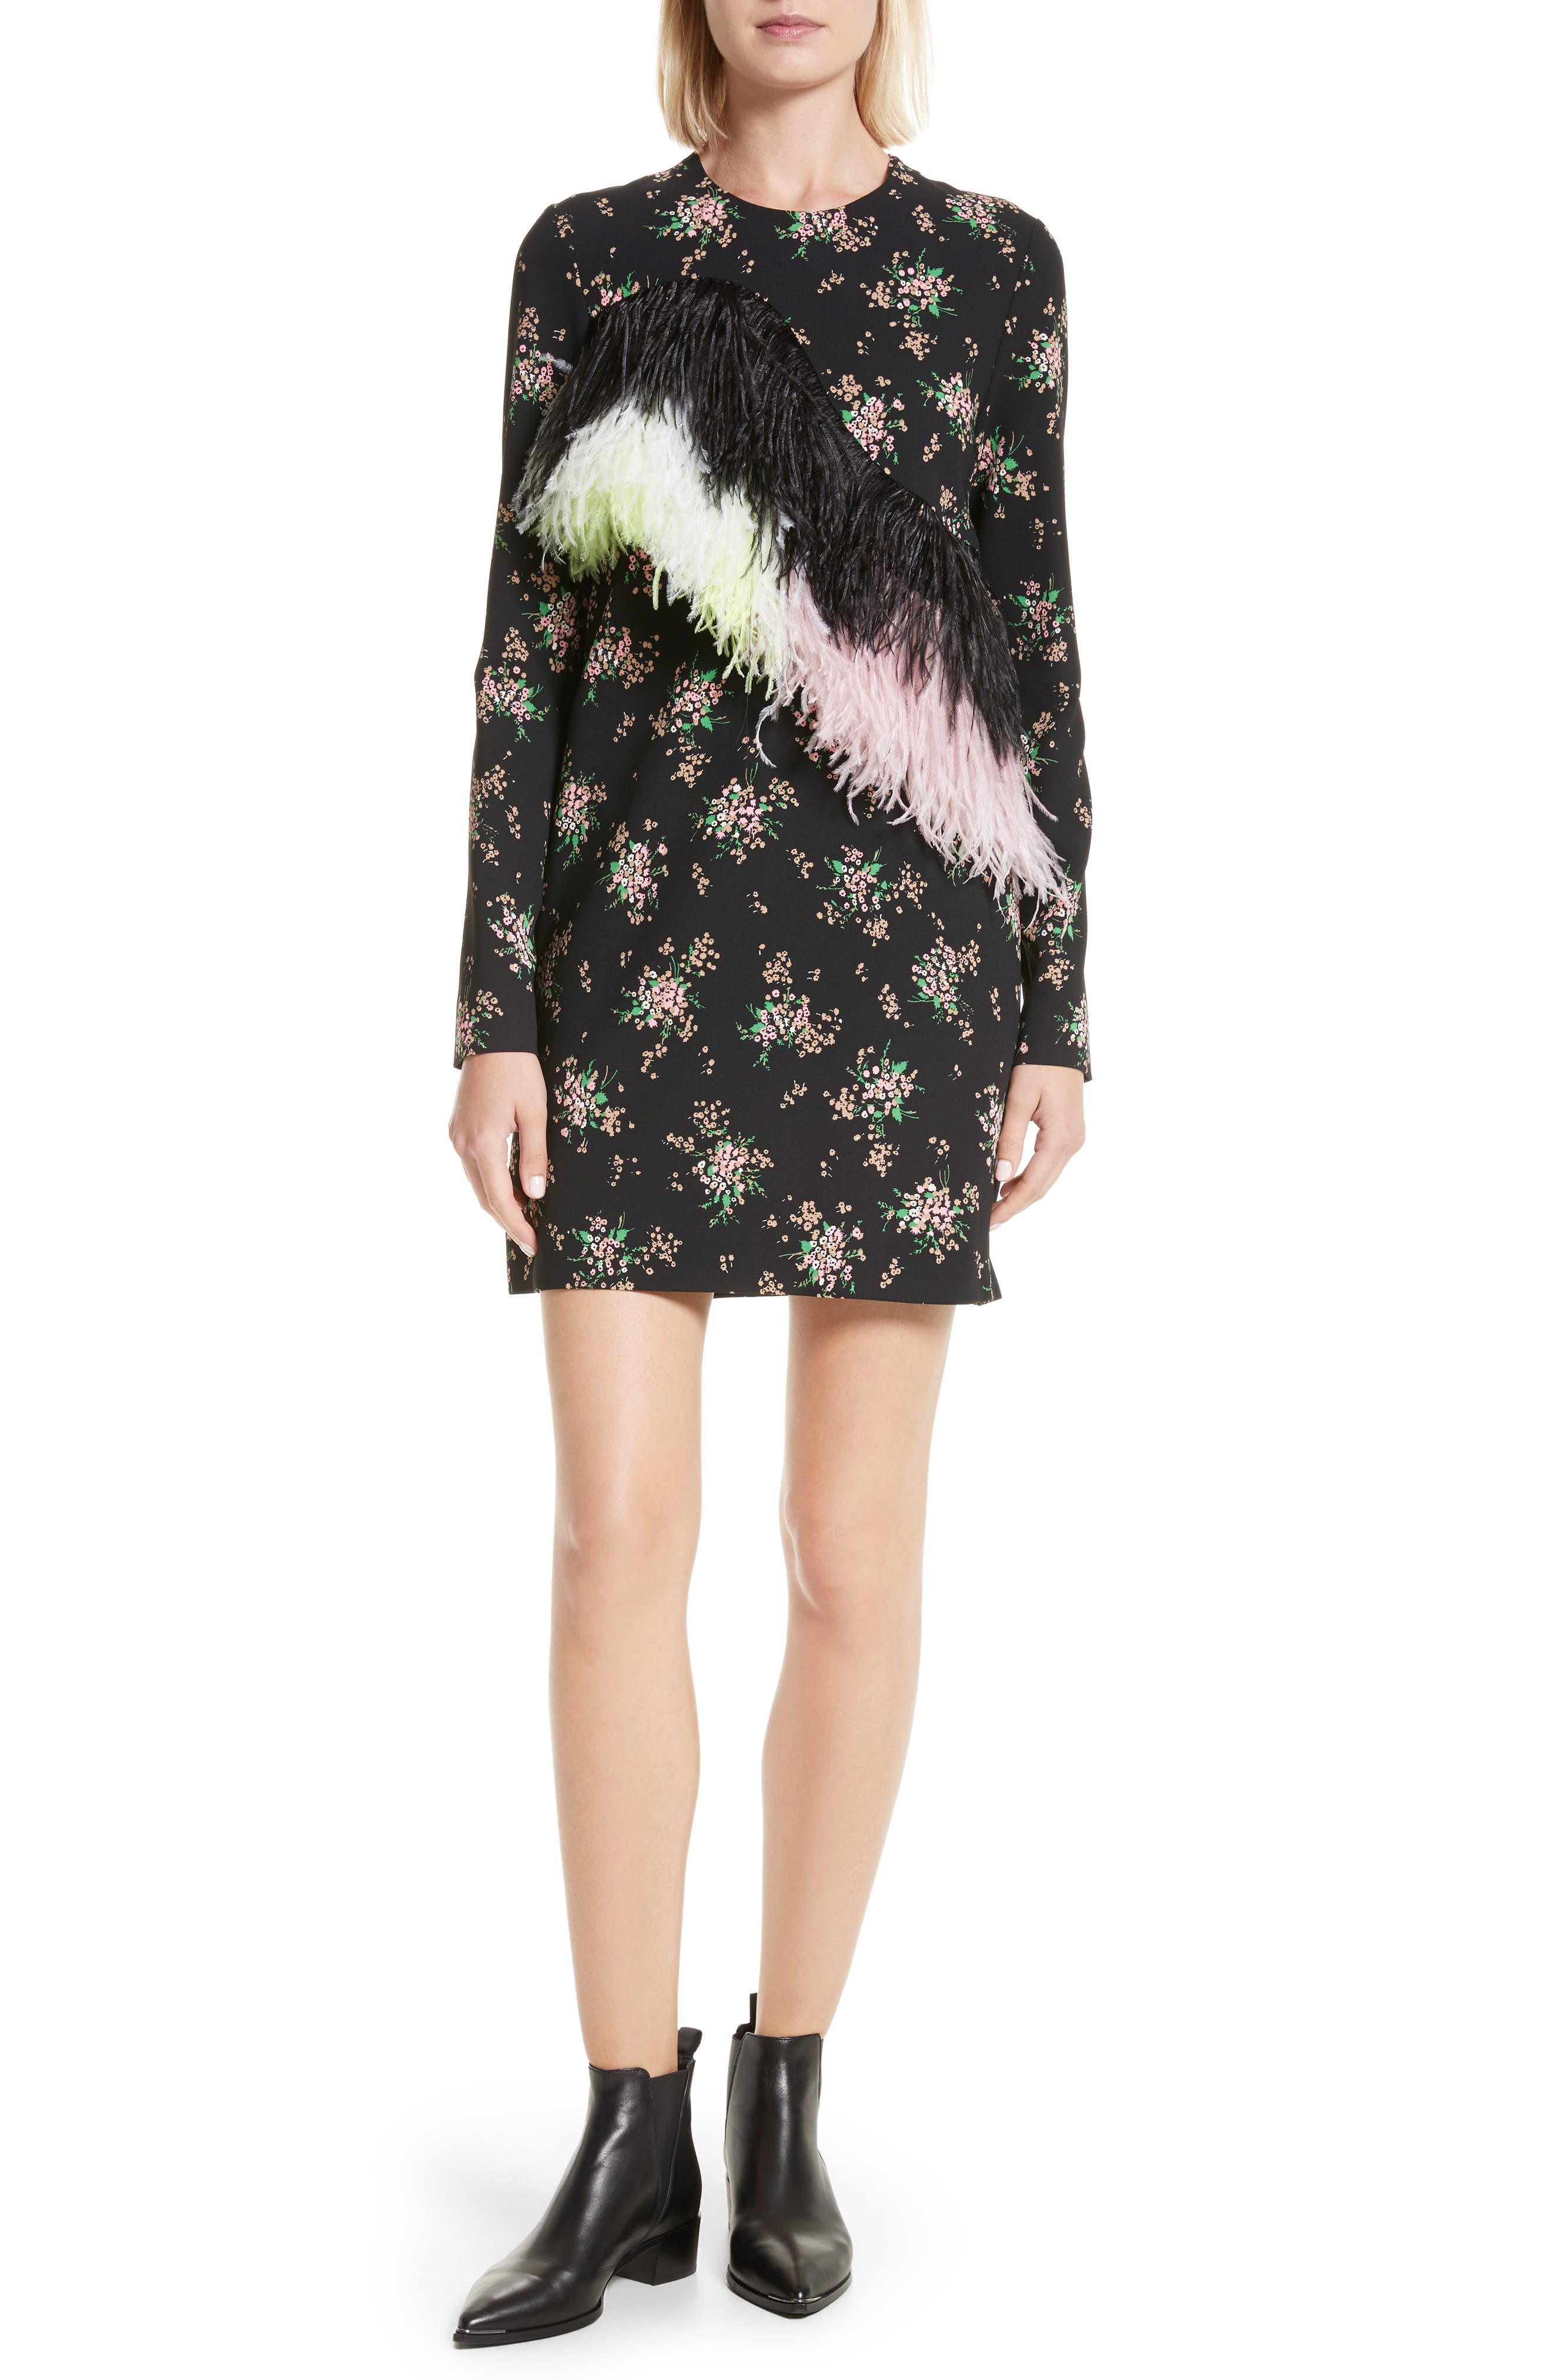 MSGM Ostrich Feather Trim Floral Print Dress